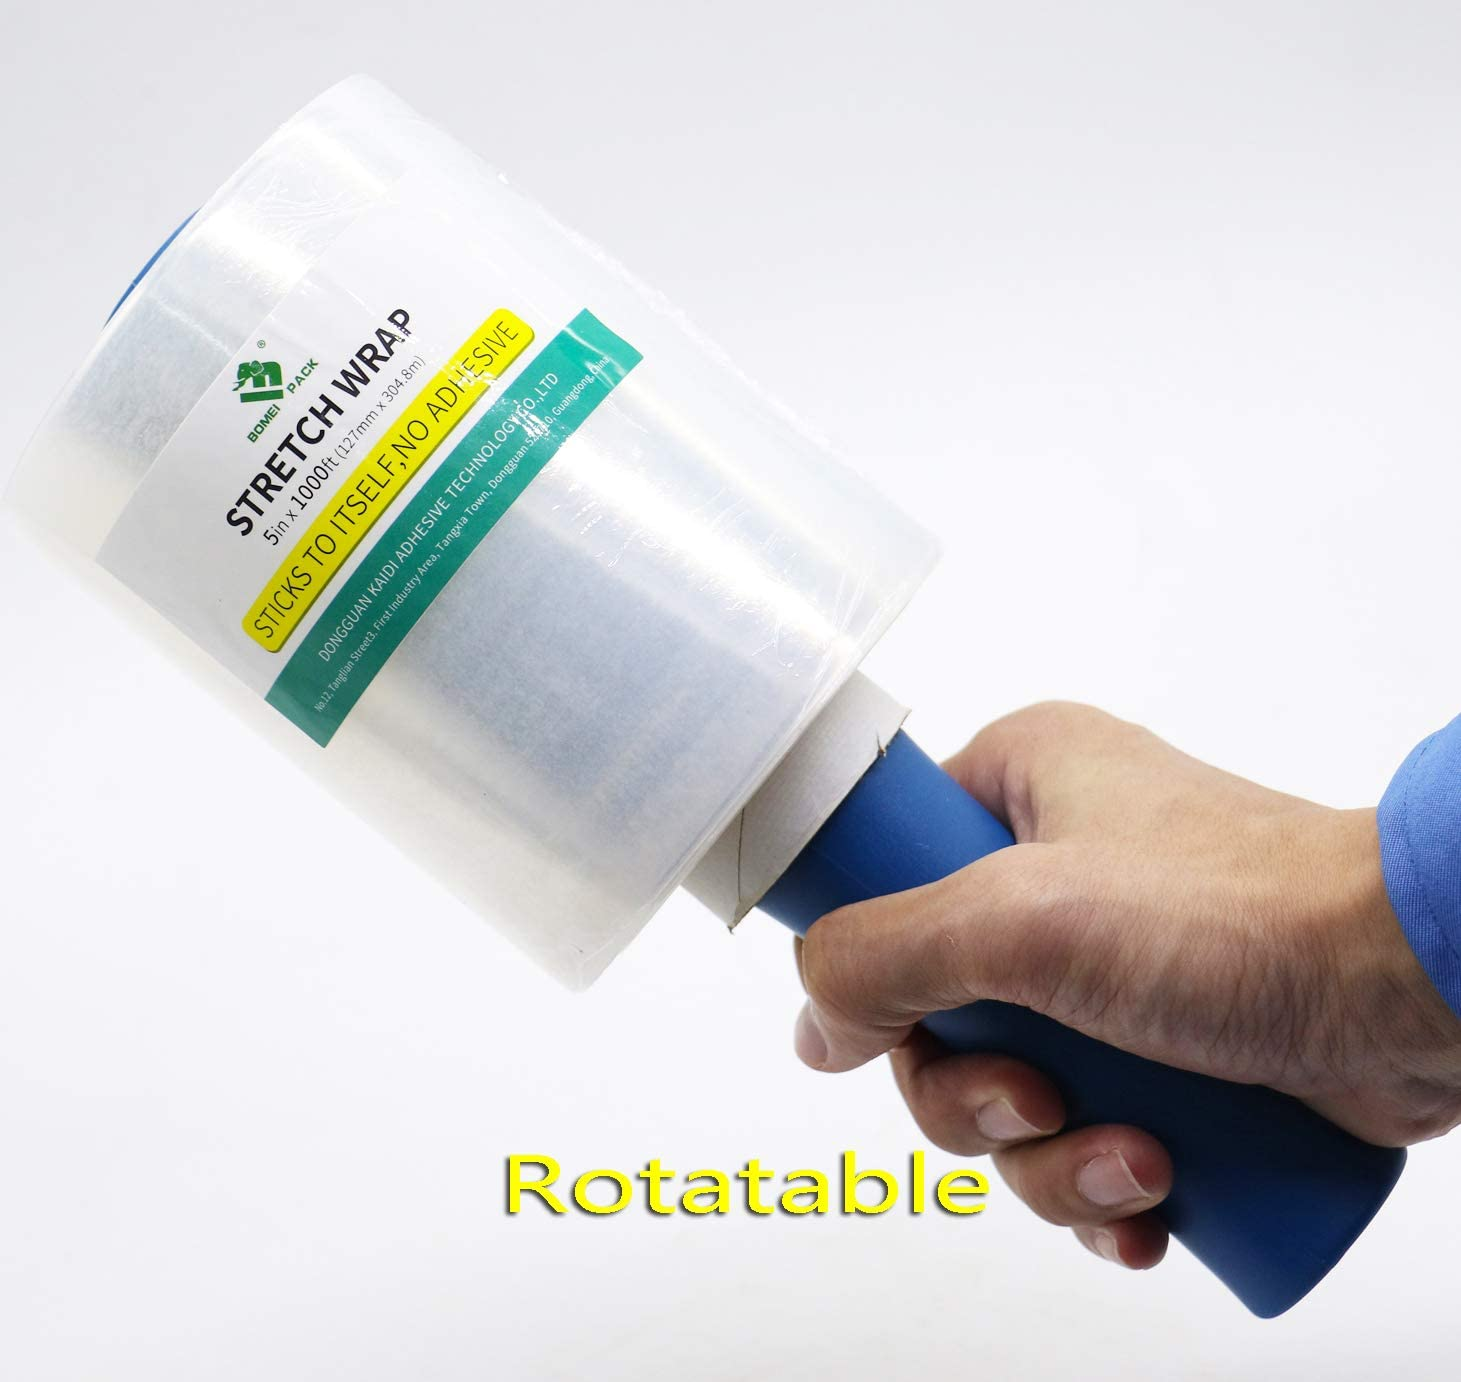 BOMEI PACK Stretch Wrap Packing Film Roll,5 inch x 1000 ft 80 Gauge,4 Packs with 1 Plastic Handle